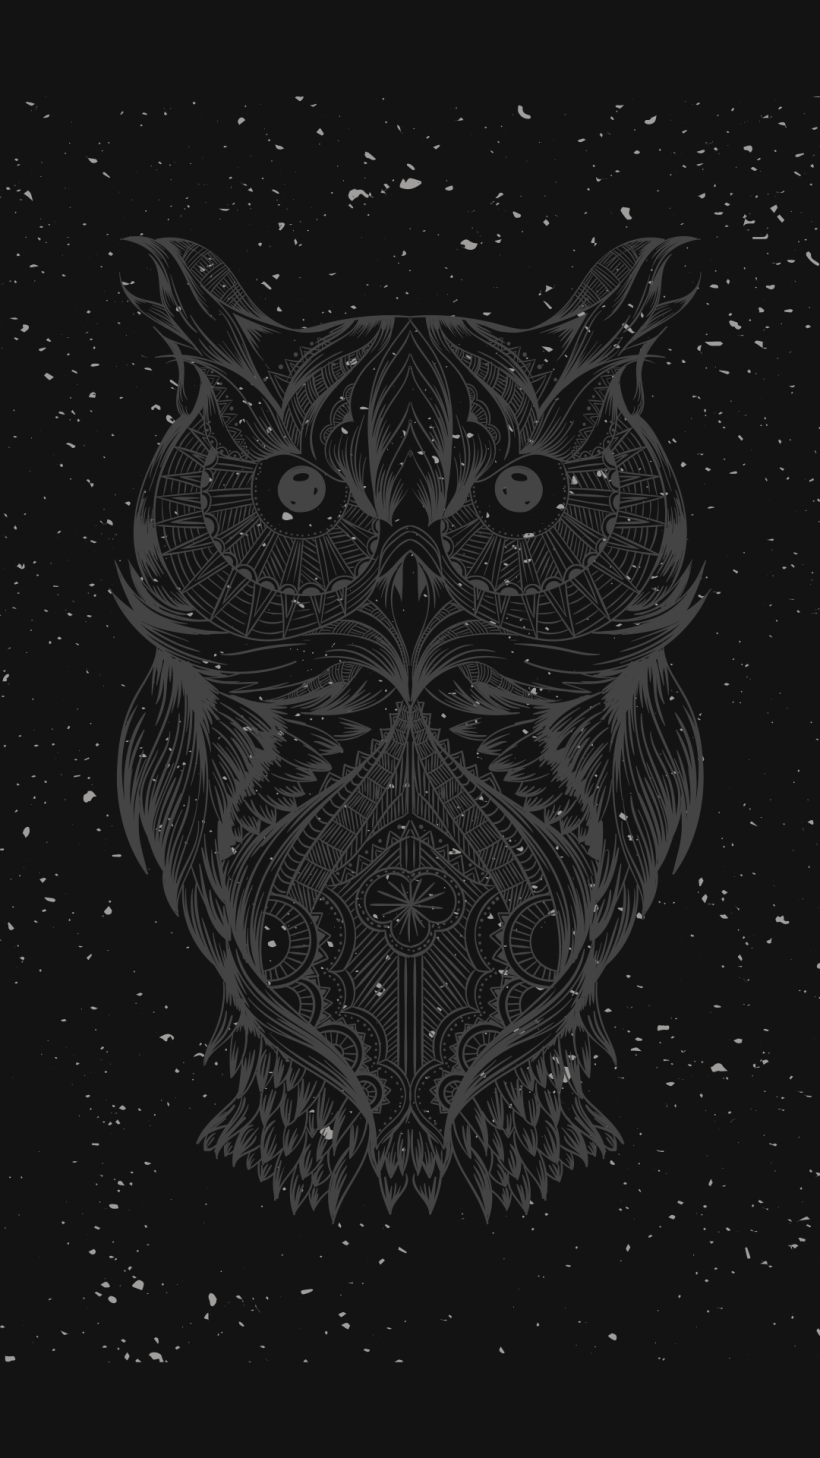 820x1458 Owl Wallpapers For Android | Bedwalls.co